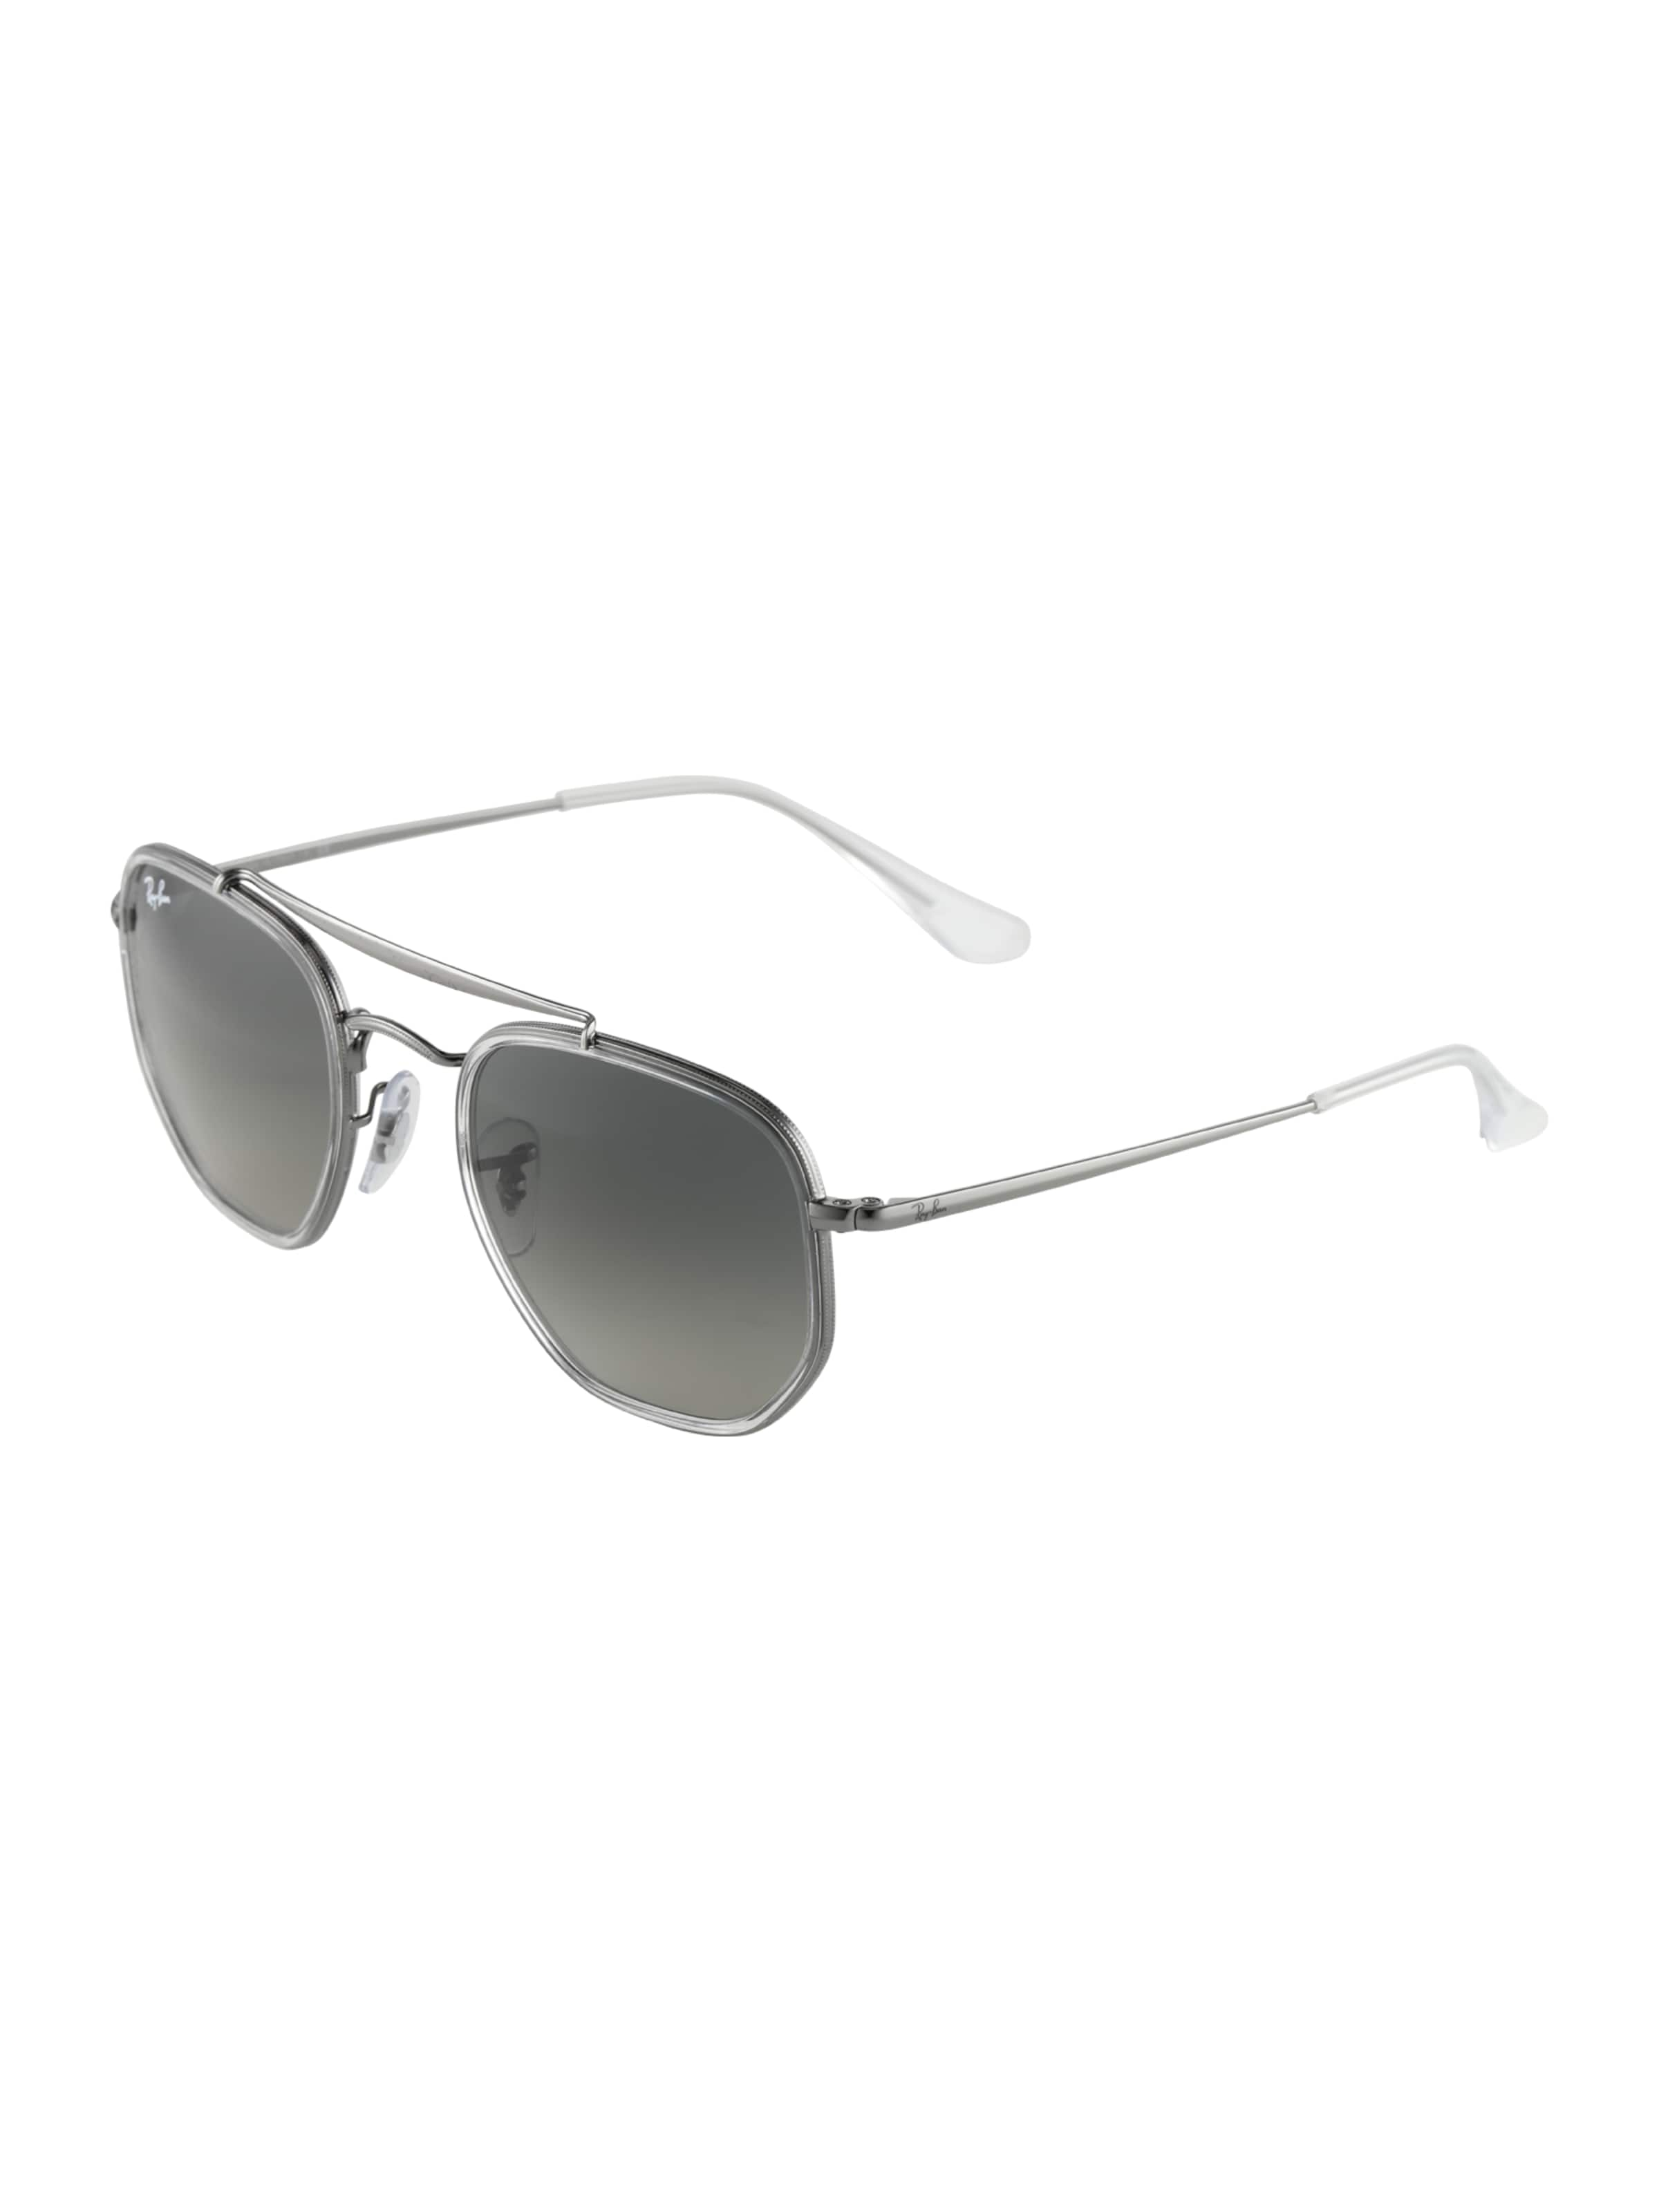 In 'the Ii' Sonnenbrille Marshal Ray ban Silber zMVpGLqjUS